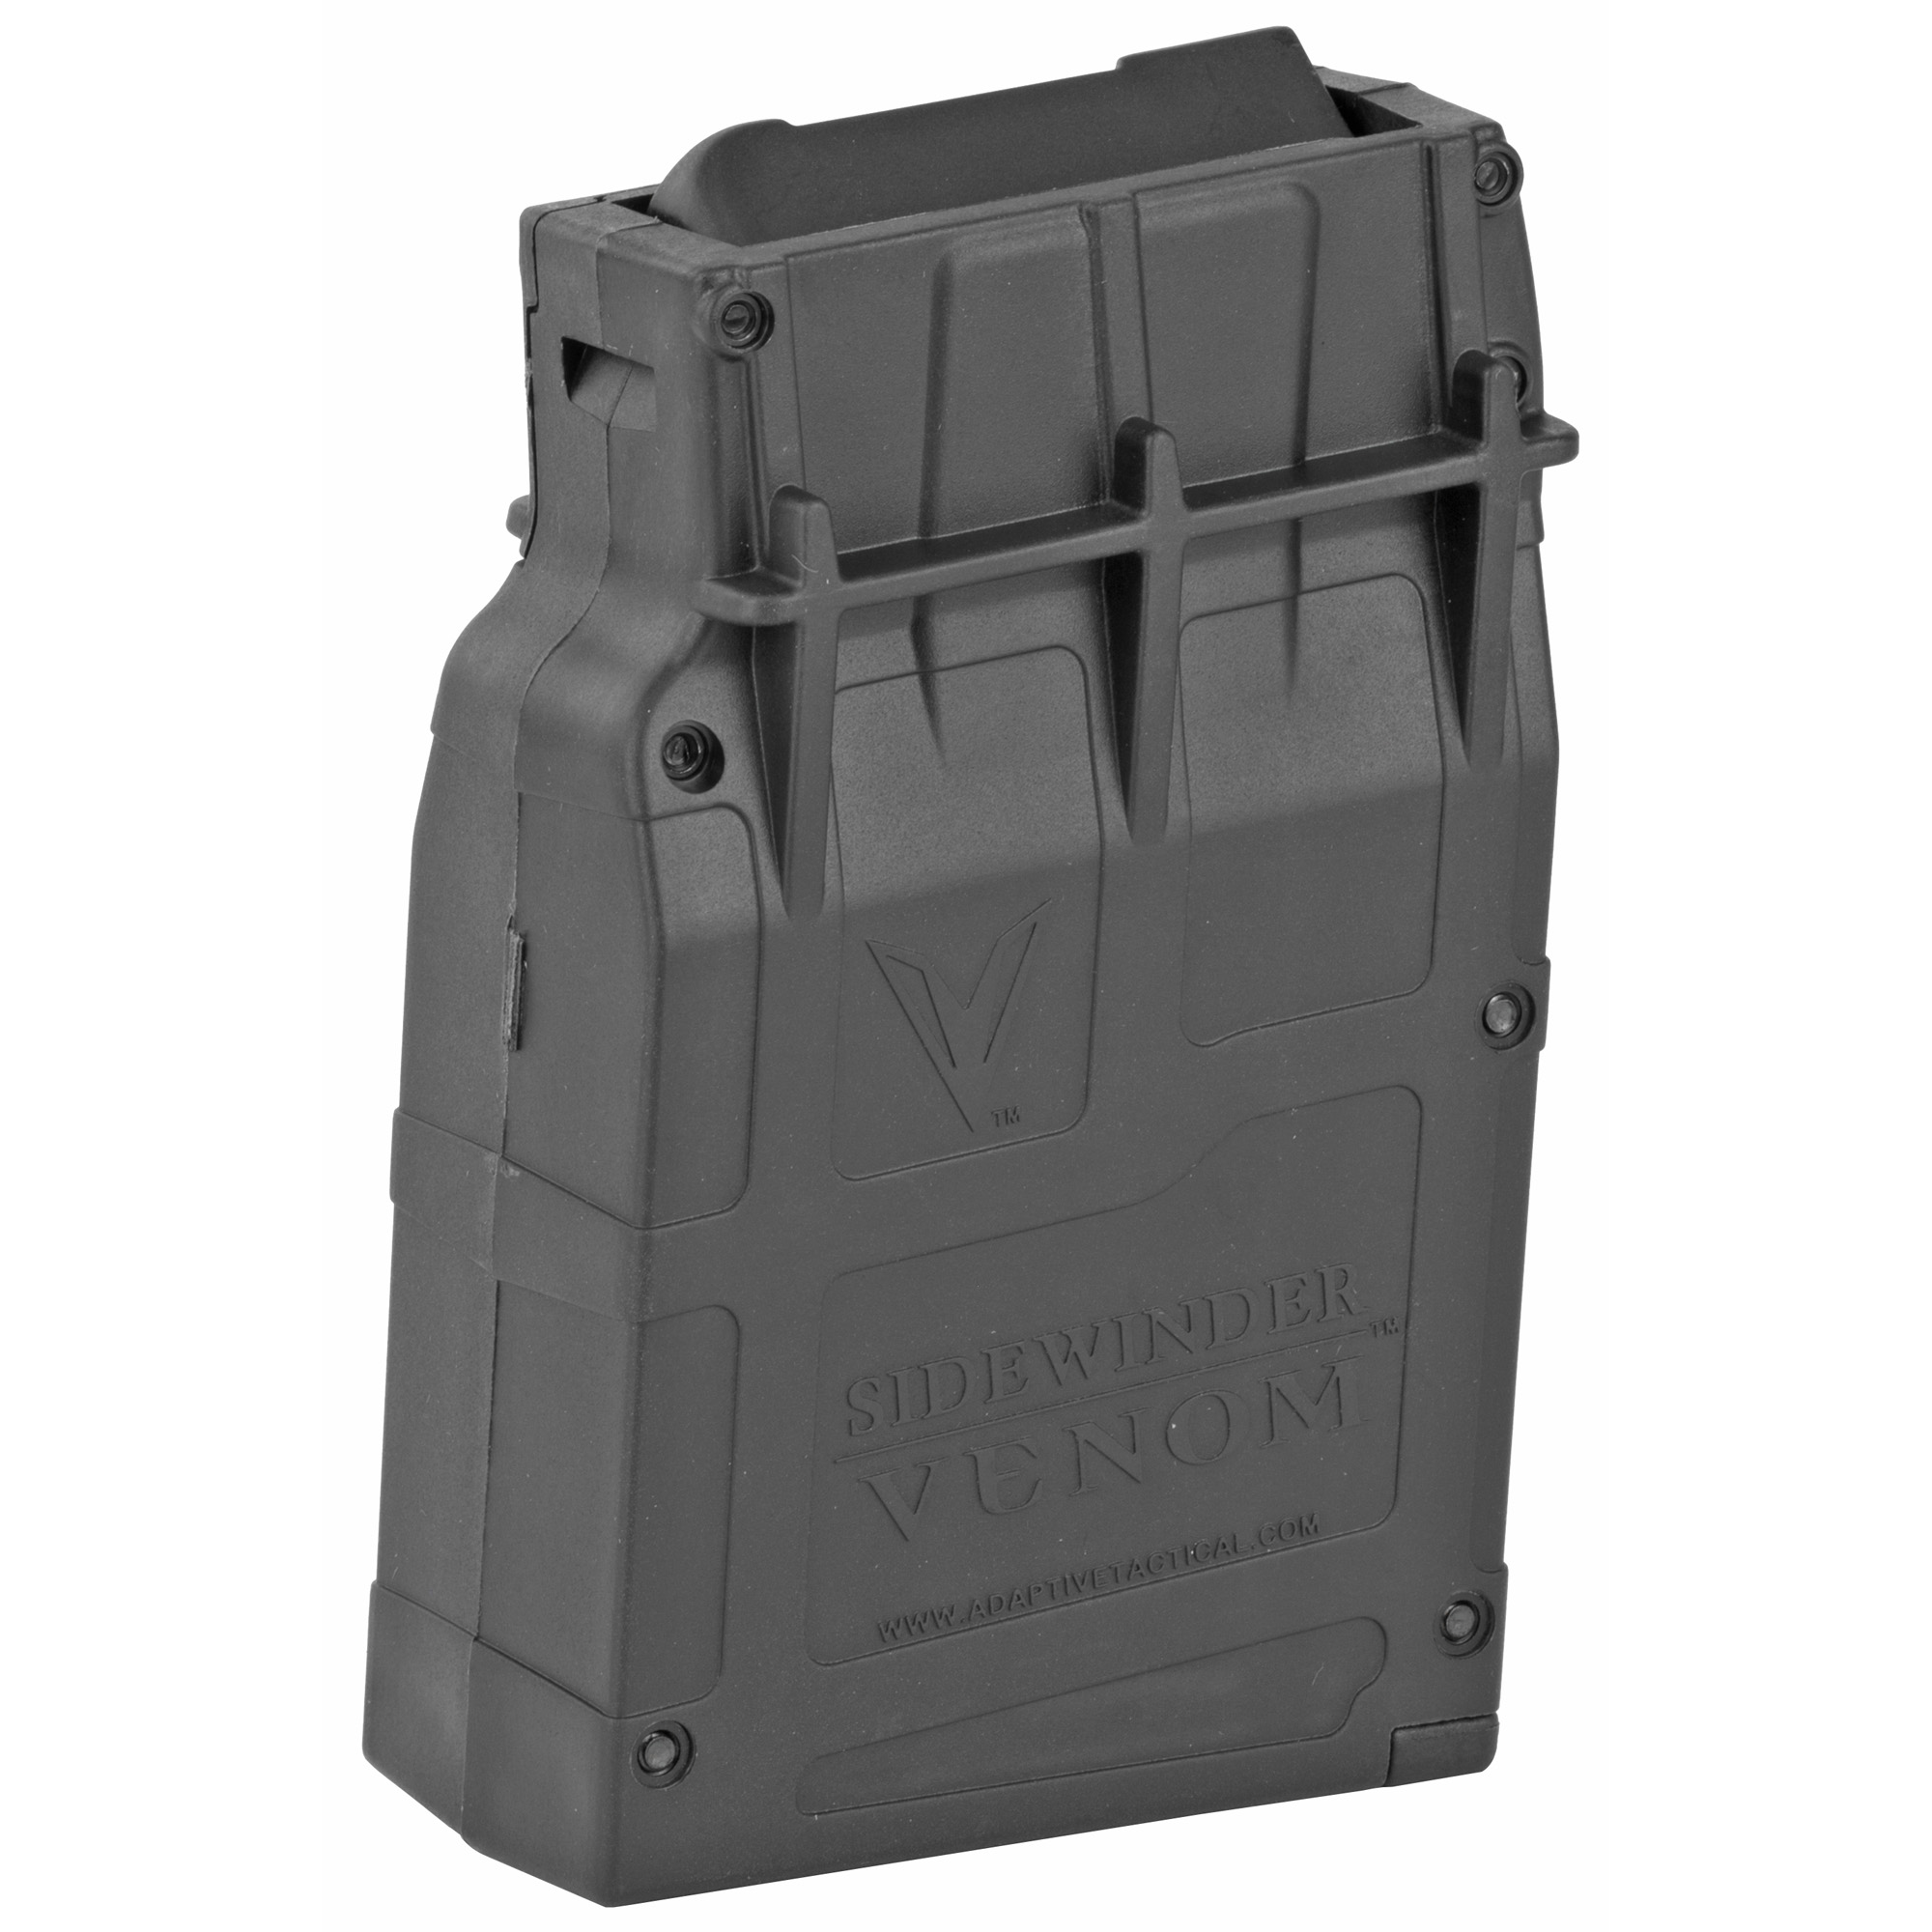 "This 5 round Box magazine is designed for use with the Sidewinder Venom magazine-fed shotgun system. Its lightning-fast reload action cycles 12 gauge rounds consistently and reliably for the ultimate in performance for defense"" range or competition."